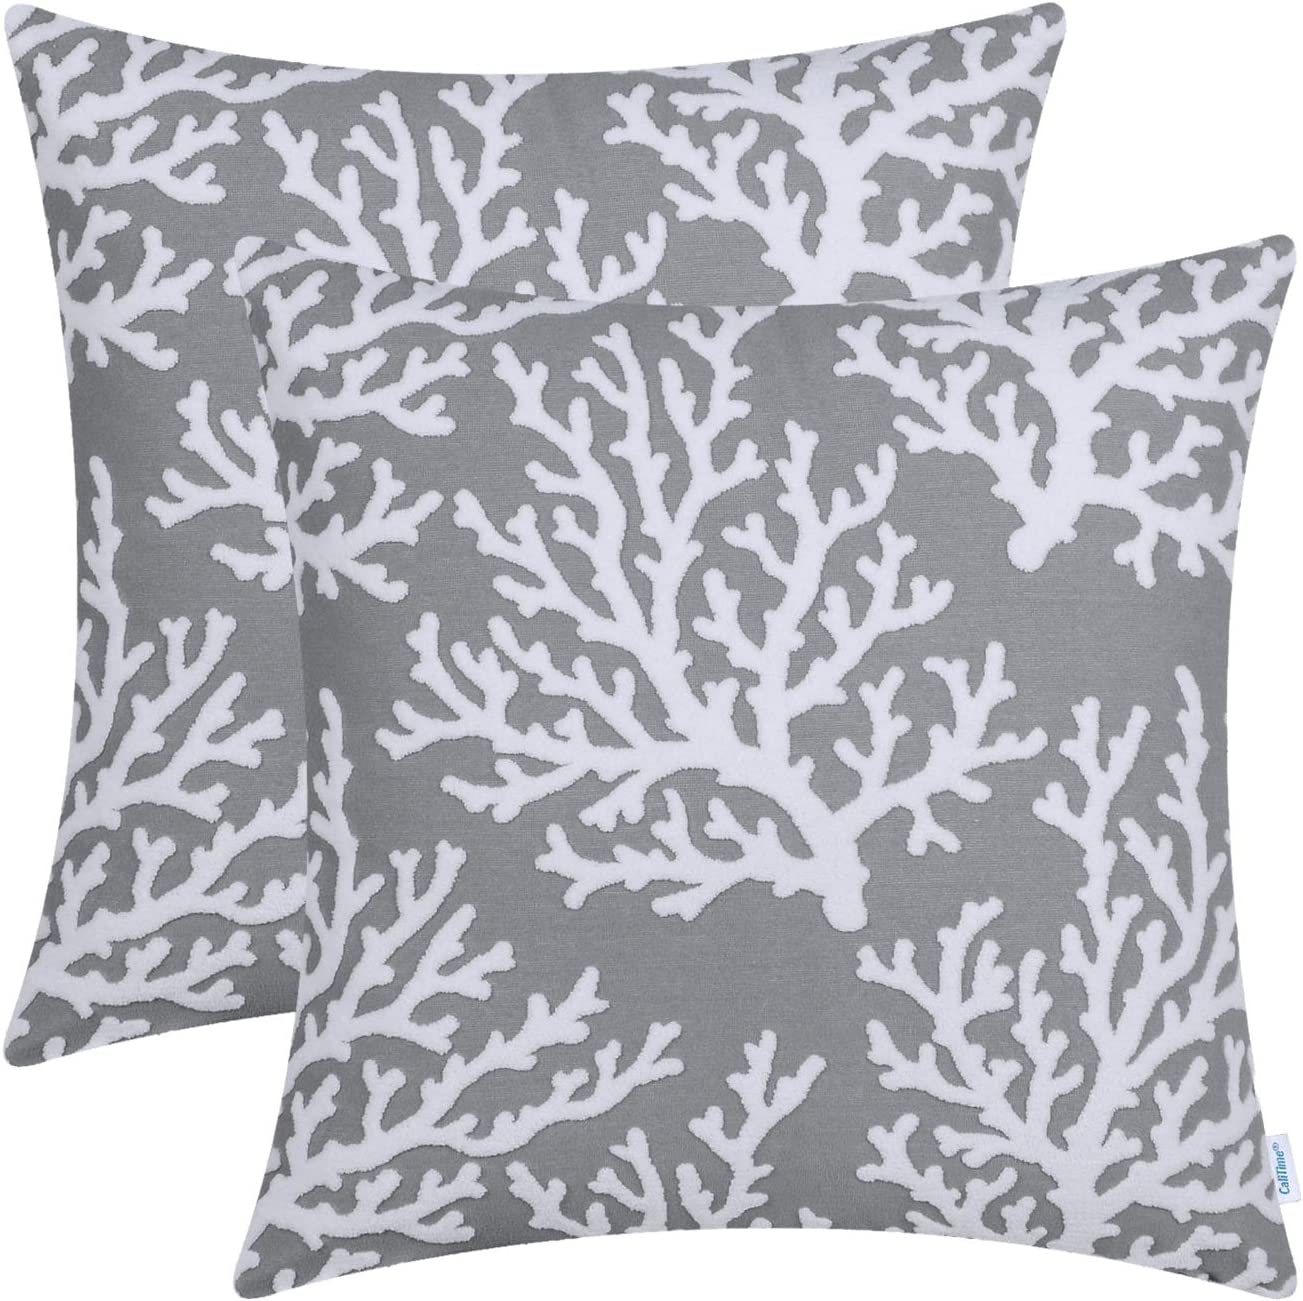 CaliTime Pack of 2 Supersoft Throw Pillow Covers Cases for Couch Sofa Bed Bedding Fluffy White Natural Coral Trees 18 X 18 Inches Medium Grey